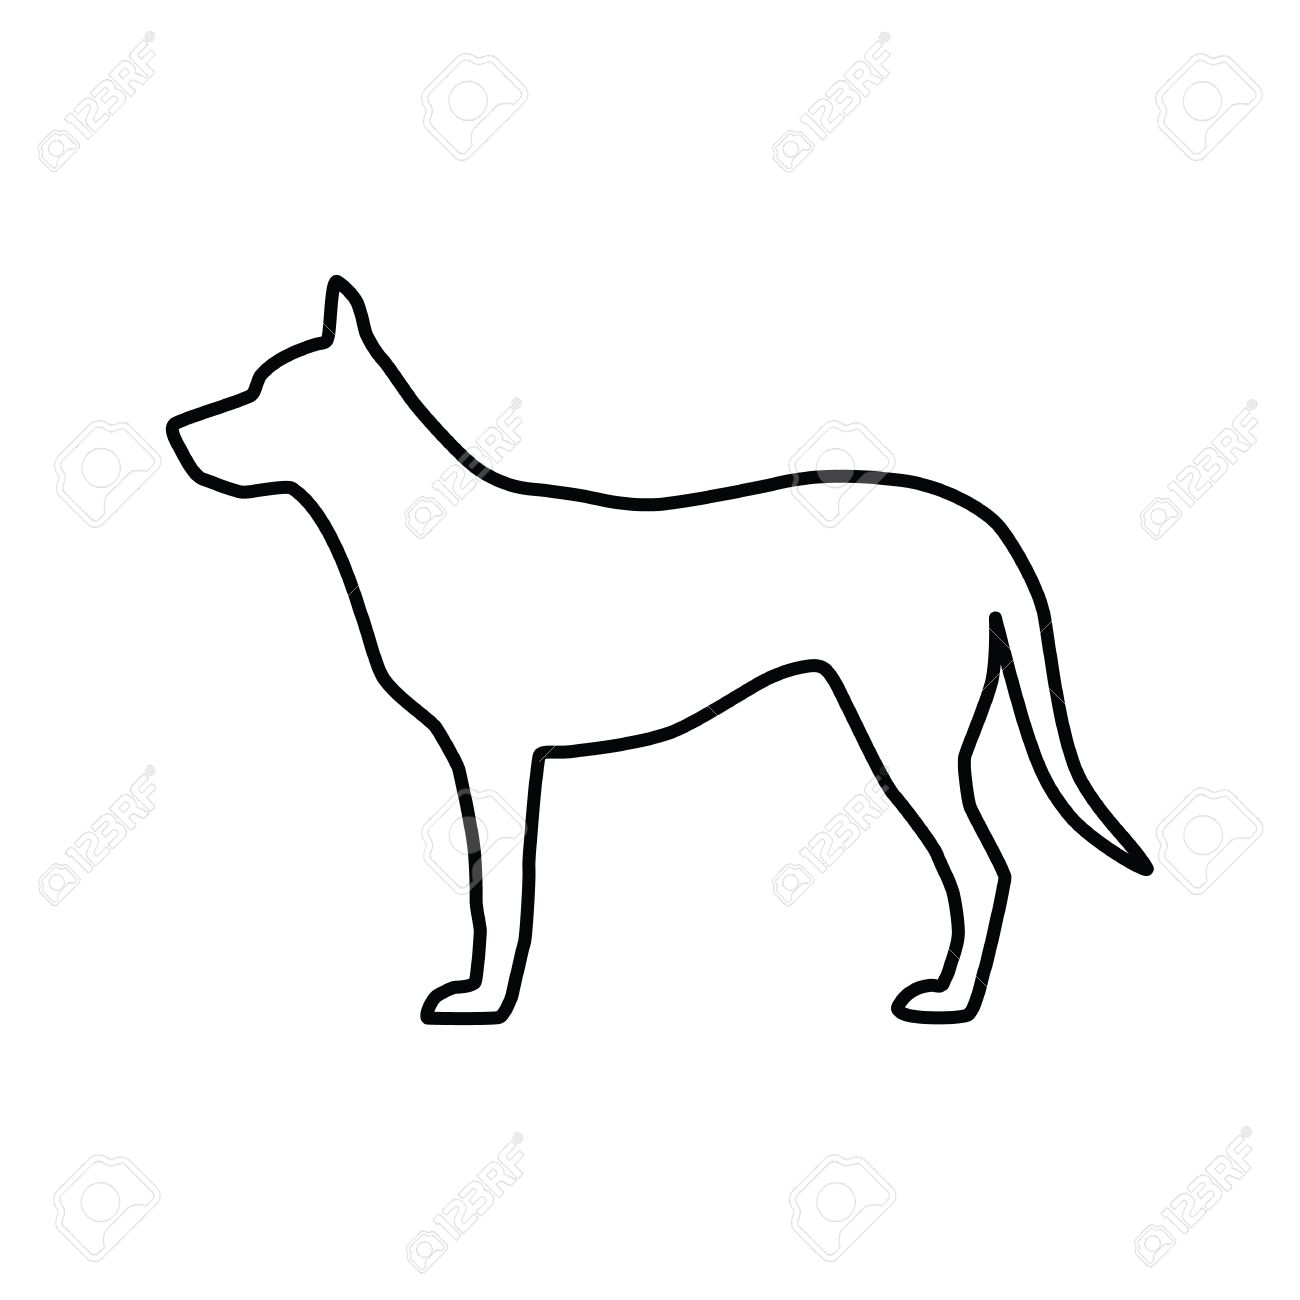 Vector Image Of An Outline Dog Silhouette On White Background